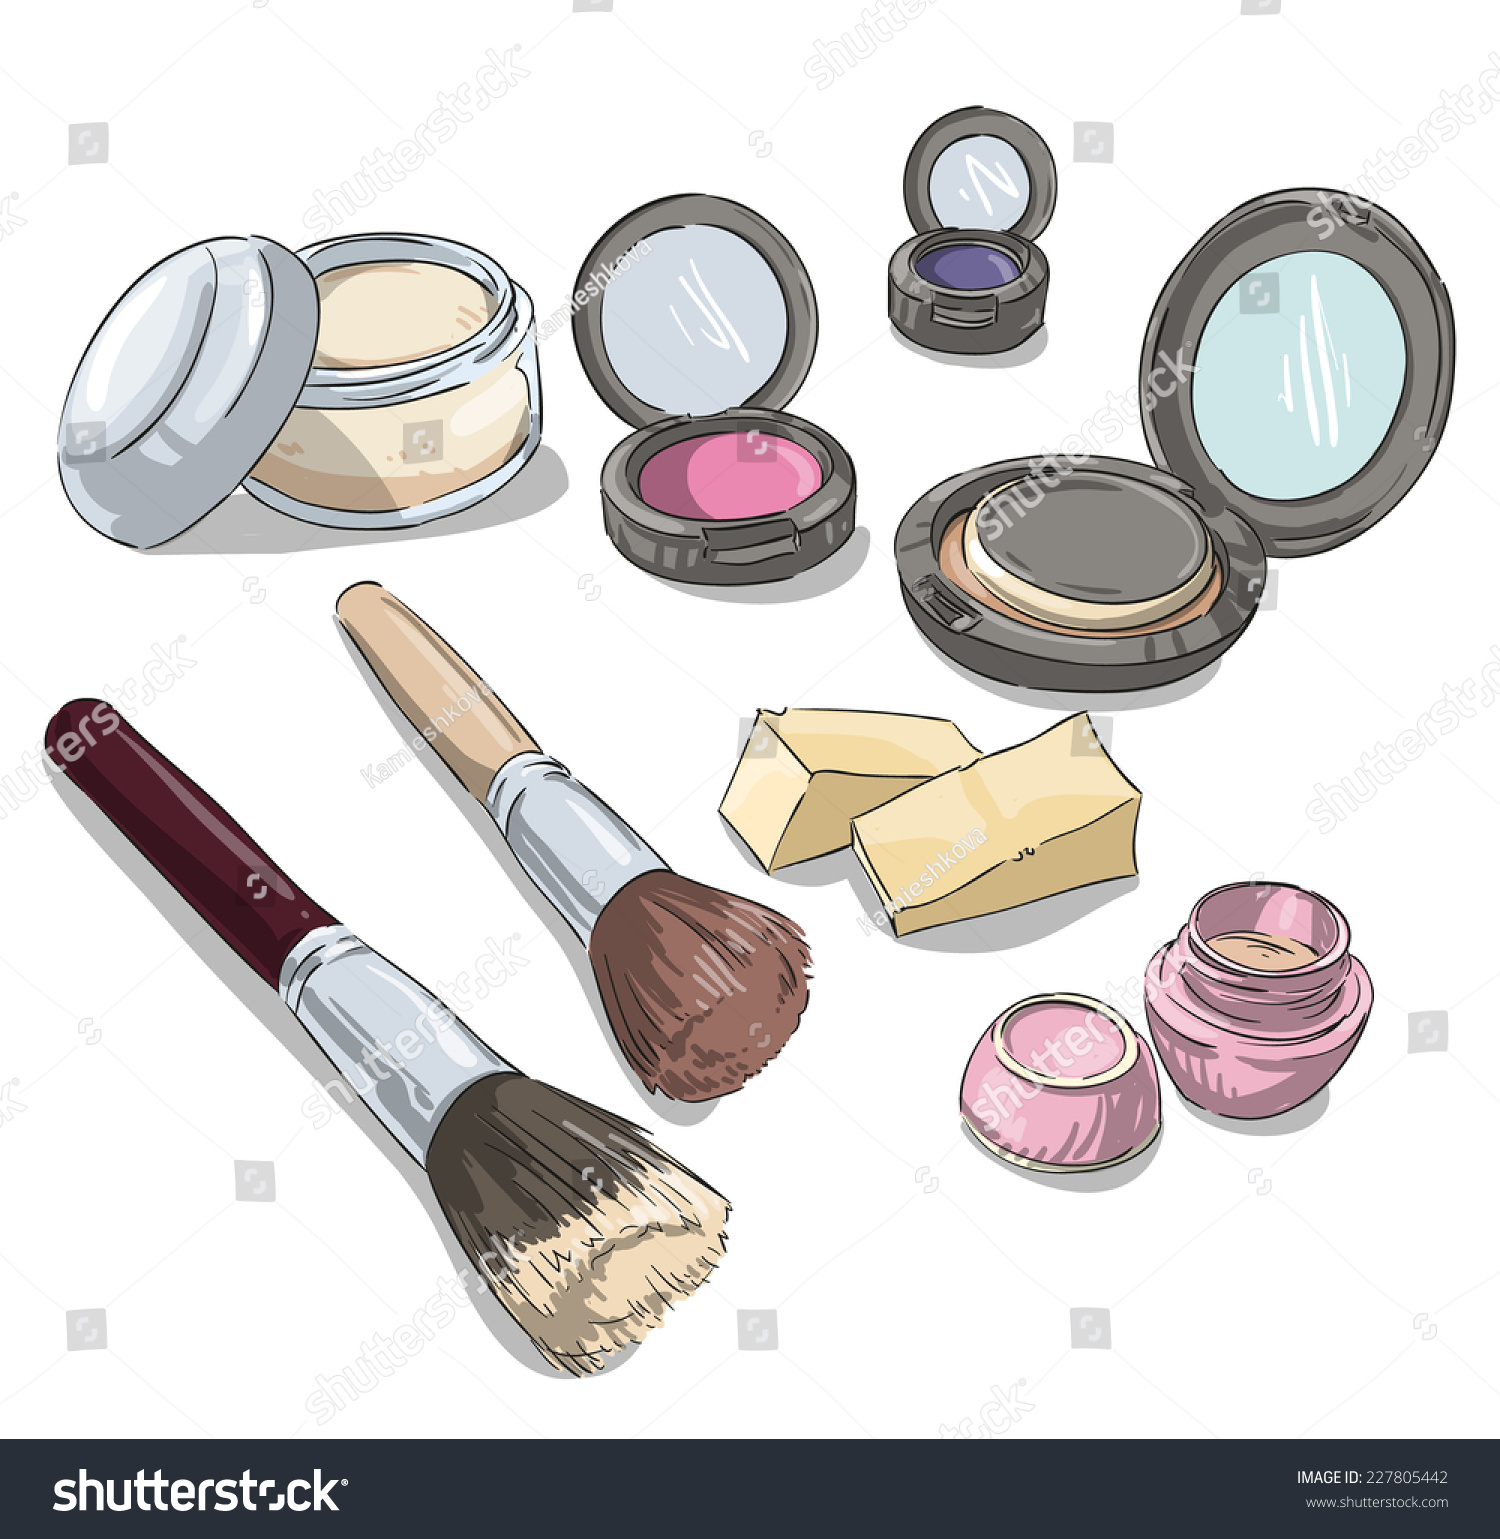 Makeup Products Drawing Fashion Illustration Stock Vector ...